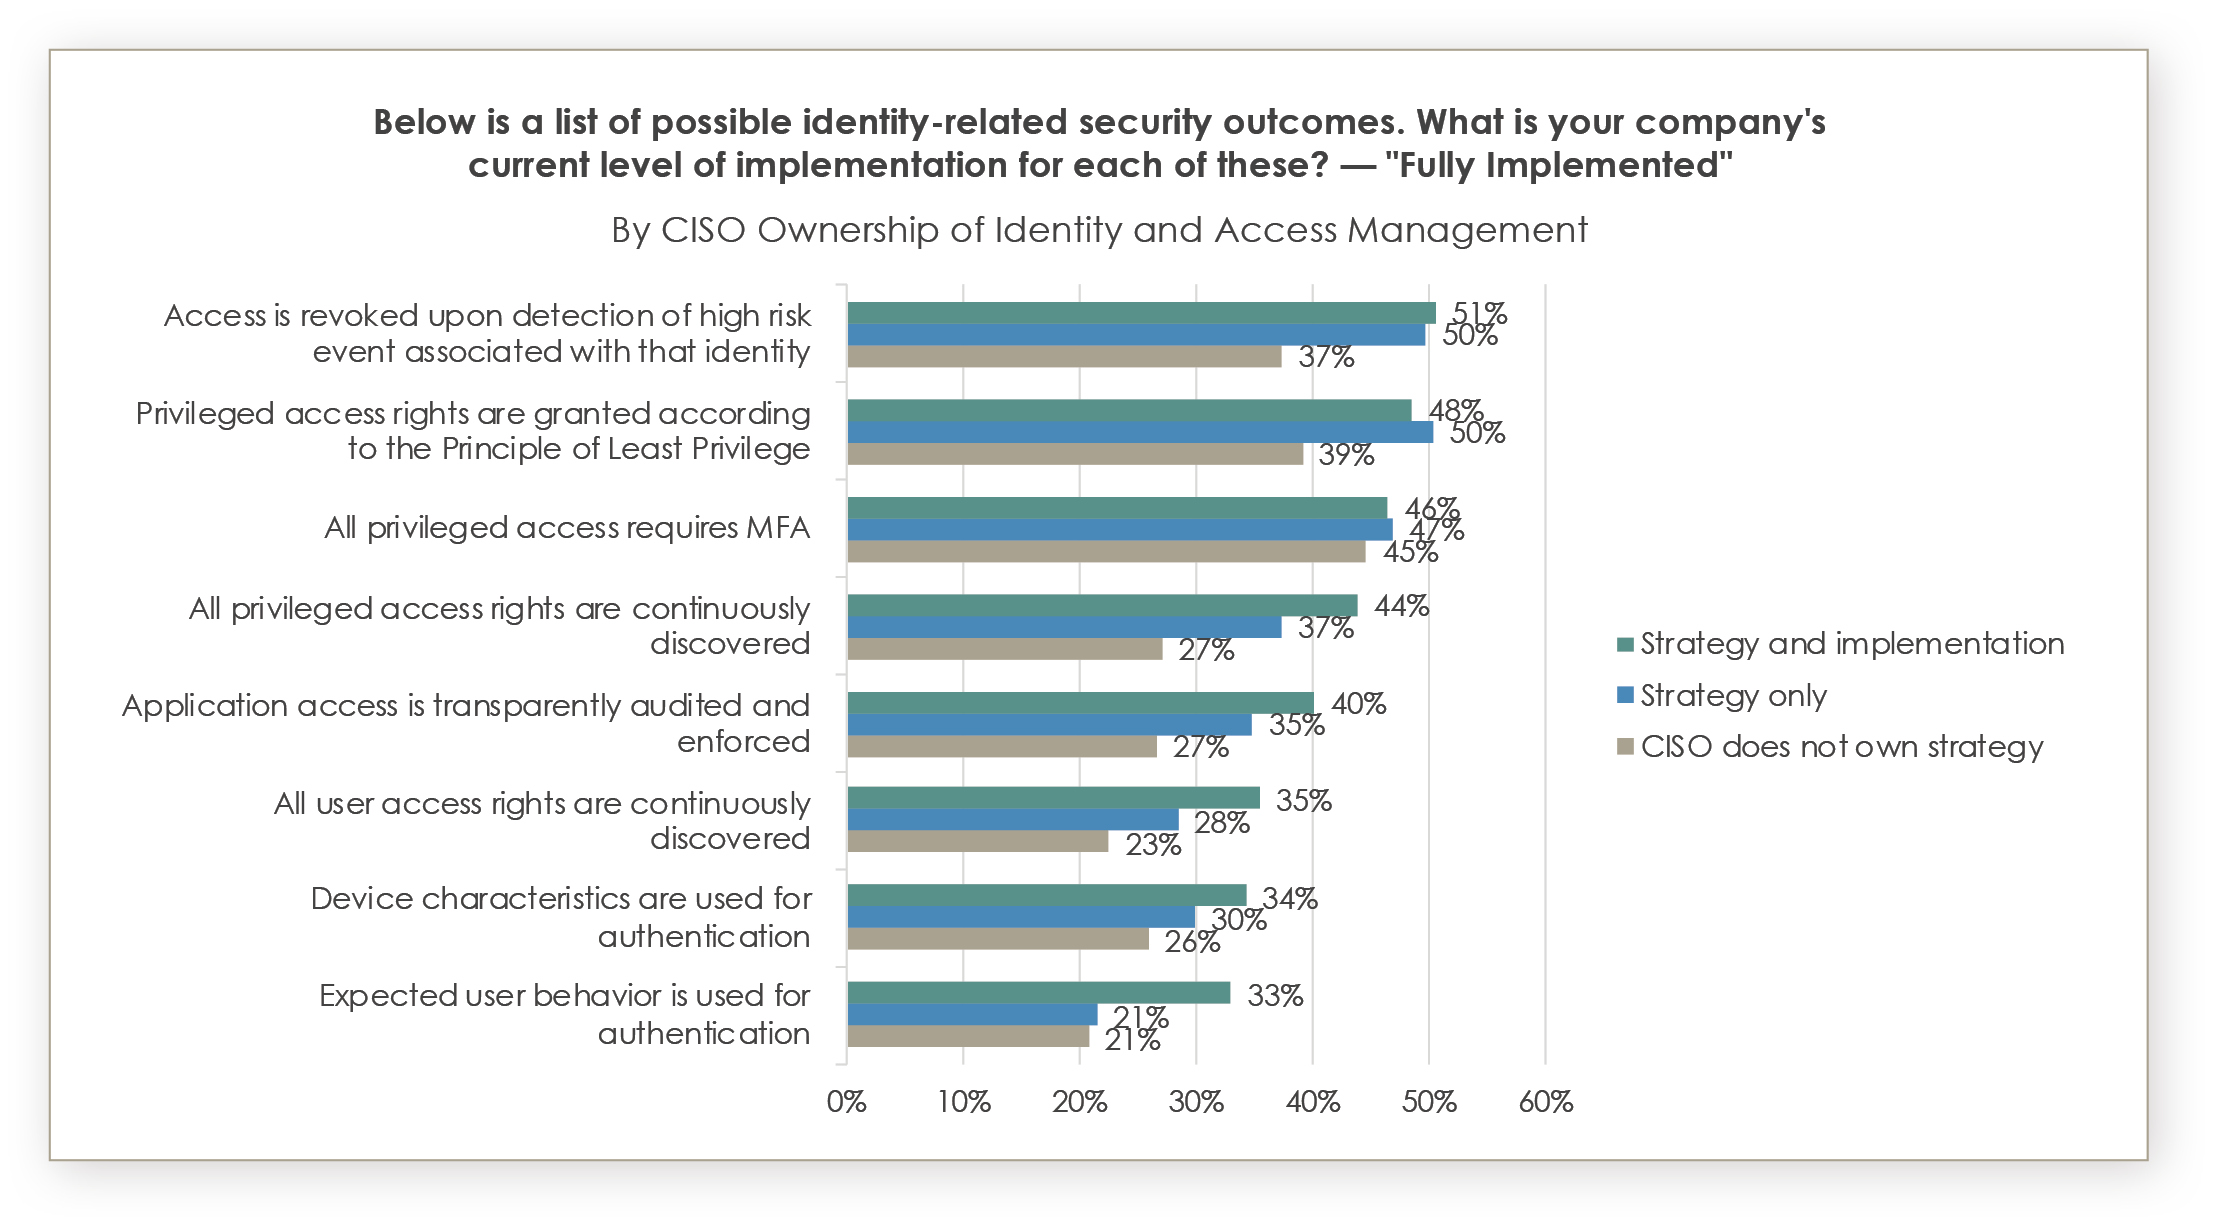 Outcome focused identity-related security methods in organization, Source: Identity Defined Security Alliance, www.idsalliance.org. 2021 Trends in Securing Digital Identities: A Survey of IT Security and Identity Professionals